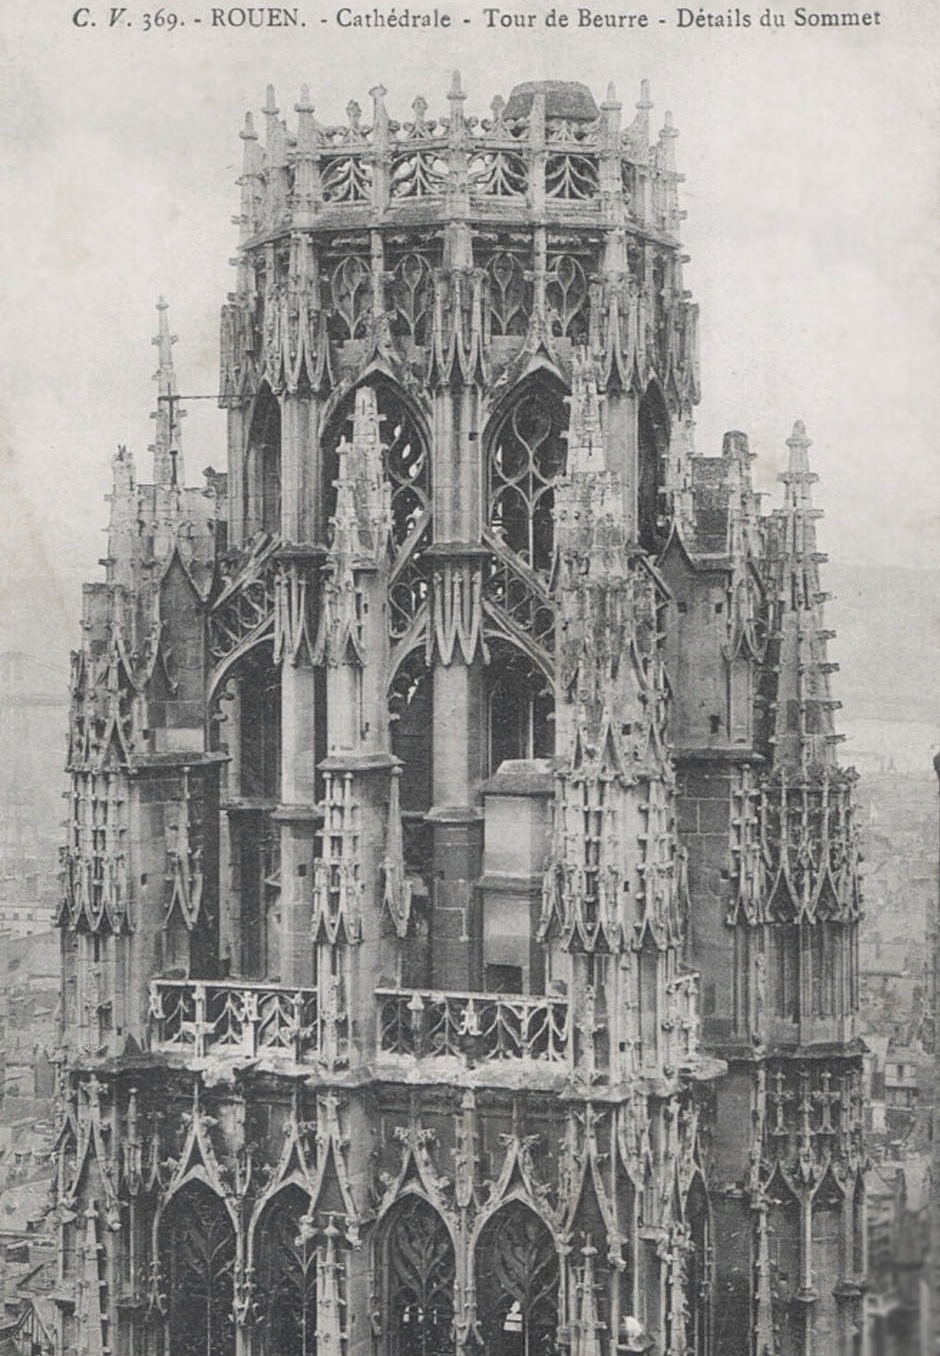 The crown on the Tour de Beurre, Rouen cathedral